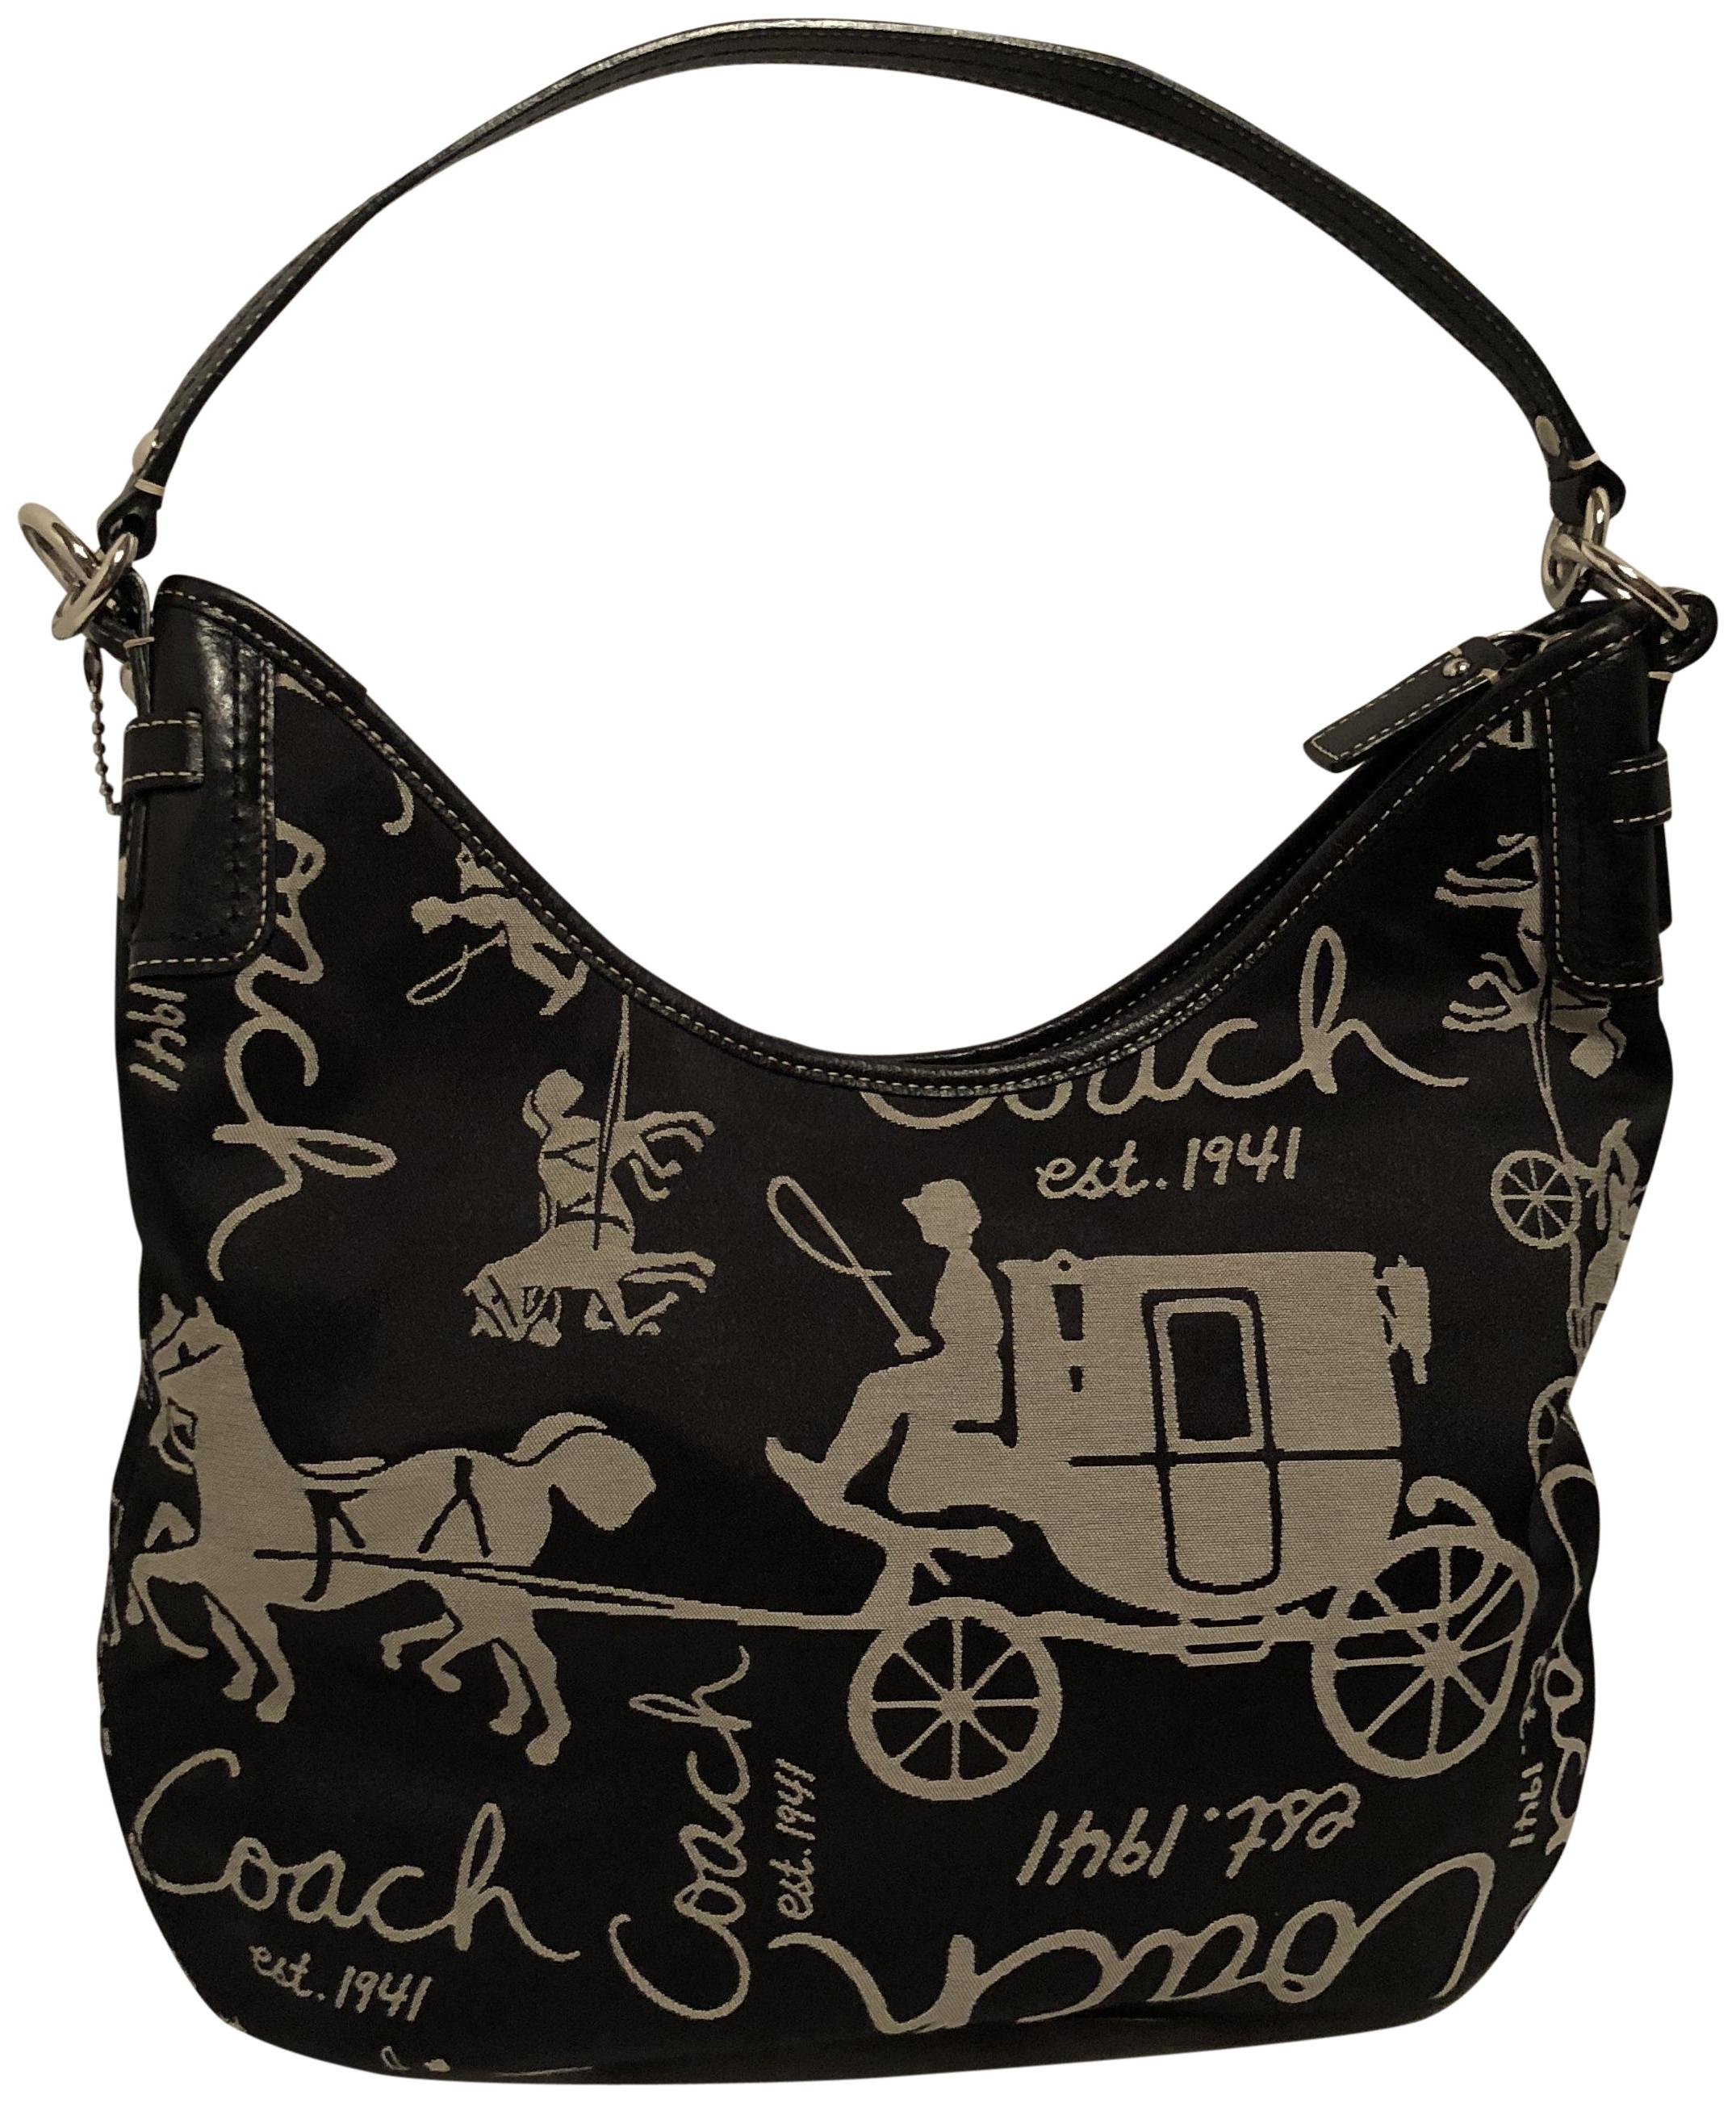 584245ea169 where can i buy coach handbags hobo style up 2fa91 401e8